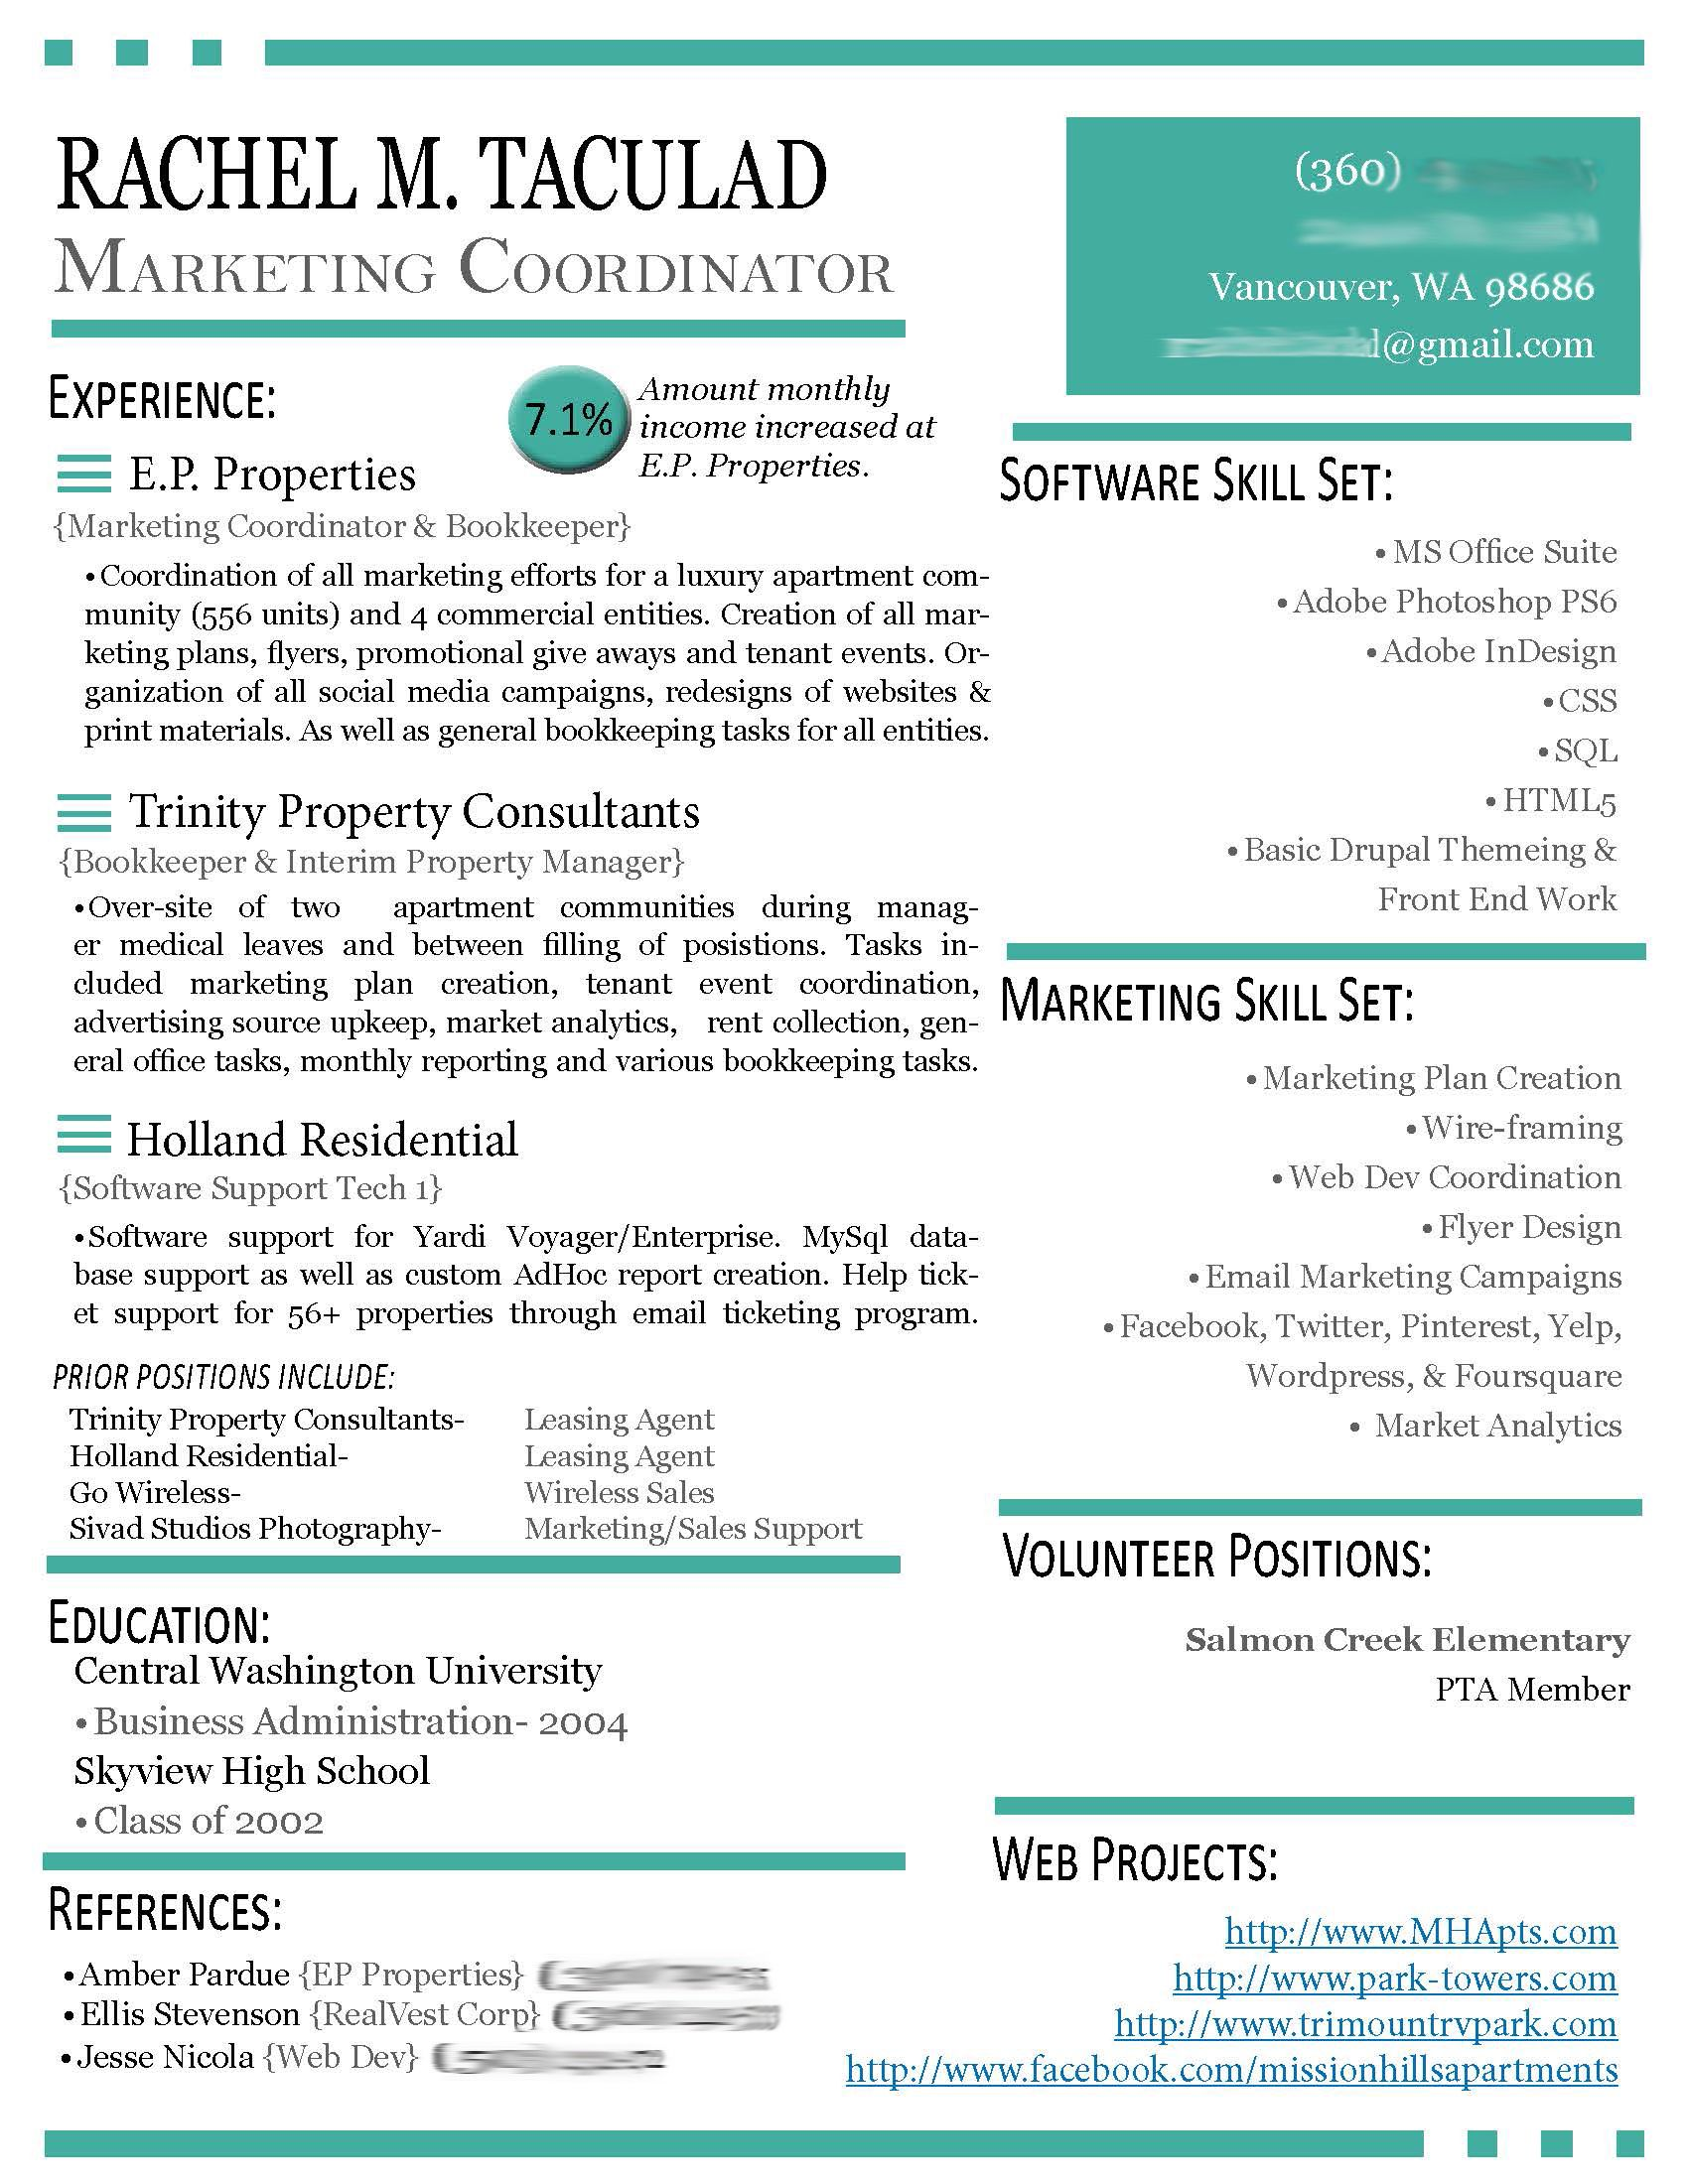 Opposenewapstandardsus  Unique  Images About Work Stuff On Pinterest  Resume Professional  With Exciting  Images About Work Stuff On Pinterest  Resume Professional Resume Template And Resume Templates With Archaic Front Desk Receptionist Resume Sample Also Best Resume Skills In Addition Security Guard Sample Resume And Building A Resume Online As Well As Software Sales Resume Additionally Store Associate Resume From Pinterestcom With Opposenewapstandardsus  Exciting  Images About Work Stuff On Pinterest  Resume Professional  With Archaic  Images About Work Stuff On Pinterest  Resume Professional Resume Template And Resume Templates And Unique Front Desk Receptionist Resume Sample Also Best Resume Skills In Addition Security Guard Sample Resume From Pinterestcom